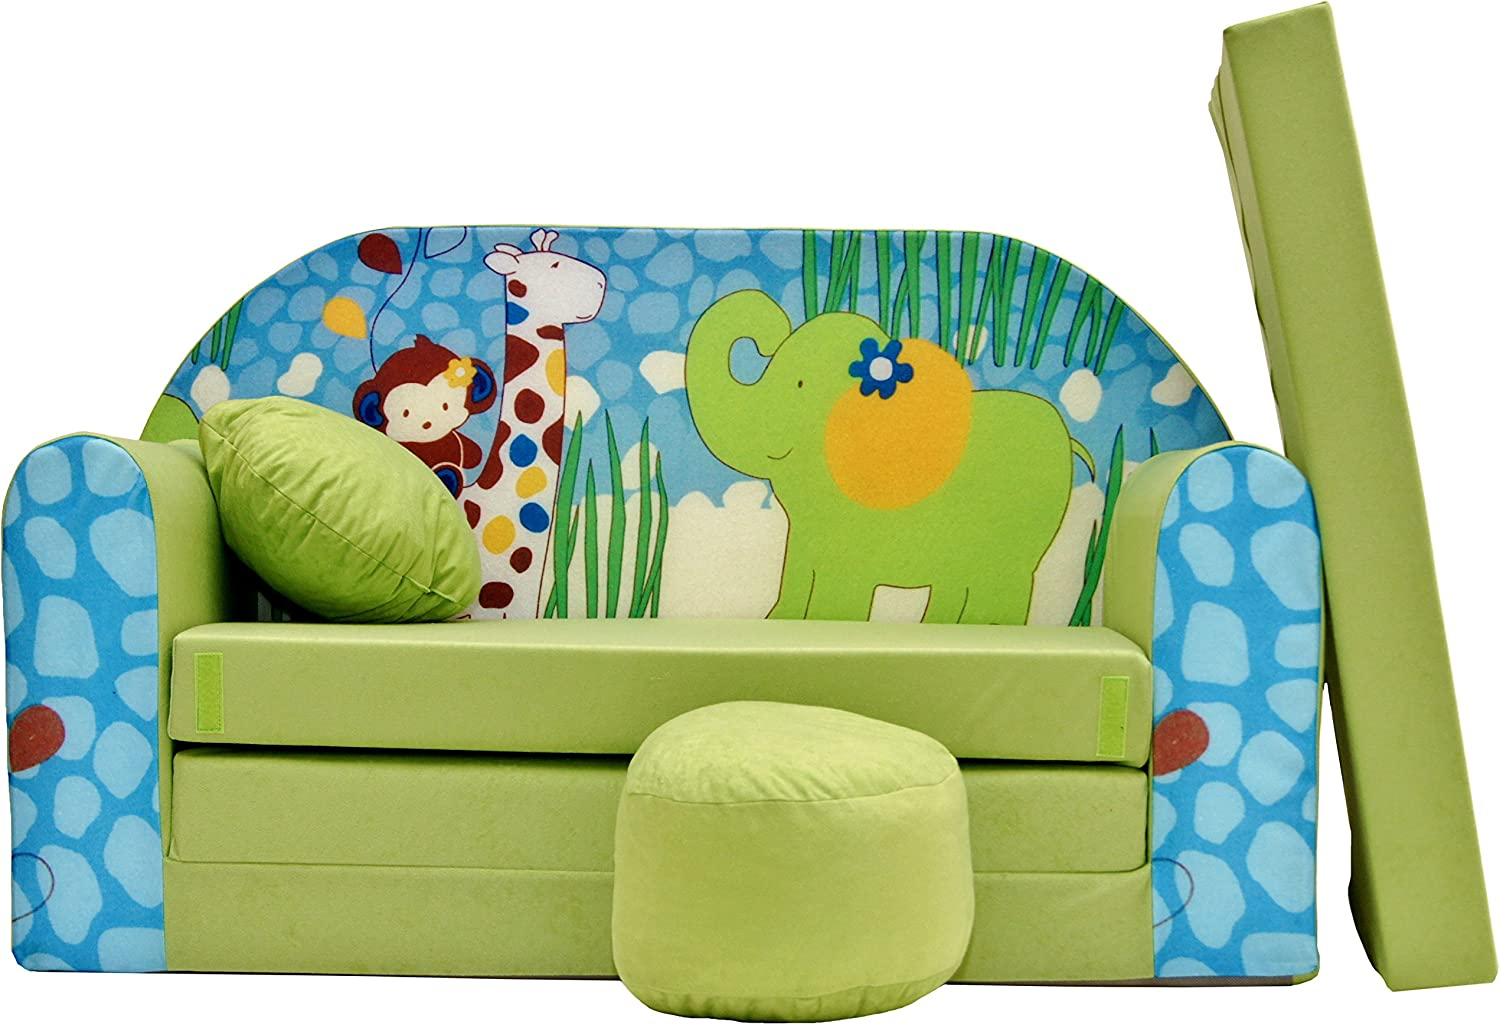 Pro Cosmo Z16 Kids Sofa Bed Futon with Pouffe Footstool Pillow, Fabric, Green, 168 x 98 x 60 cm, cotton,